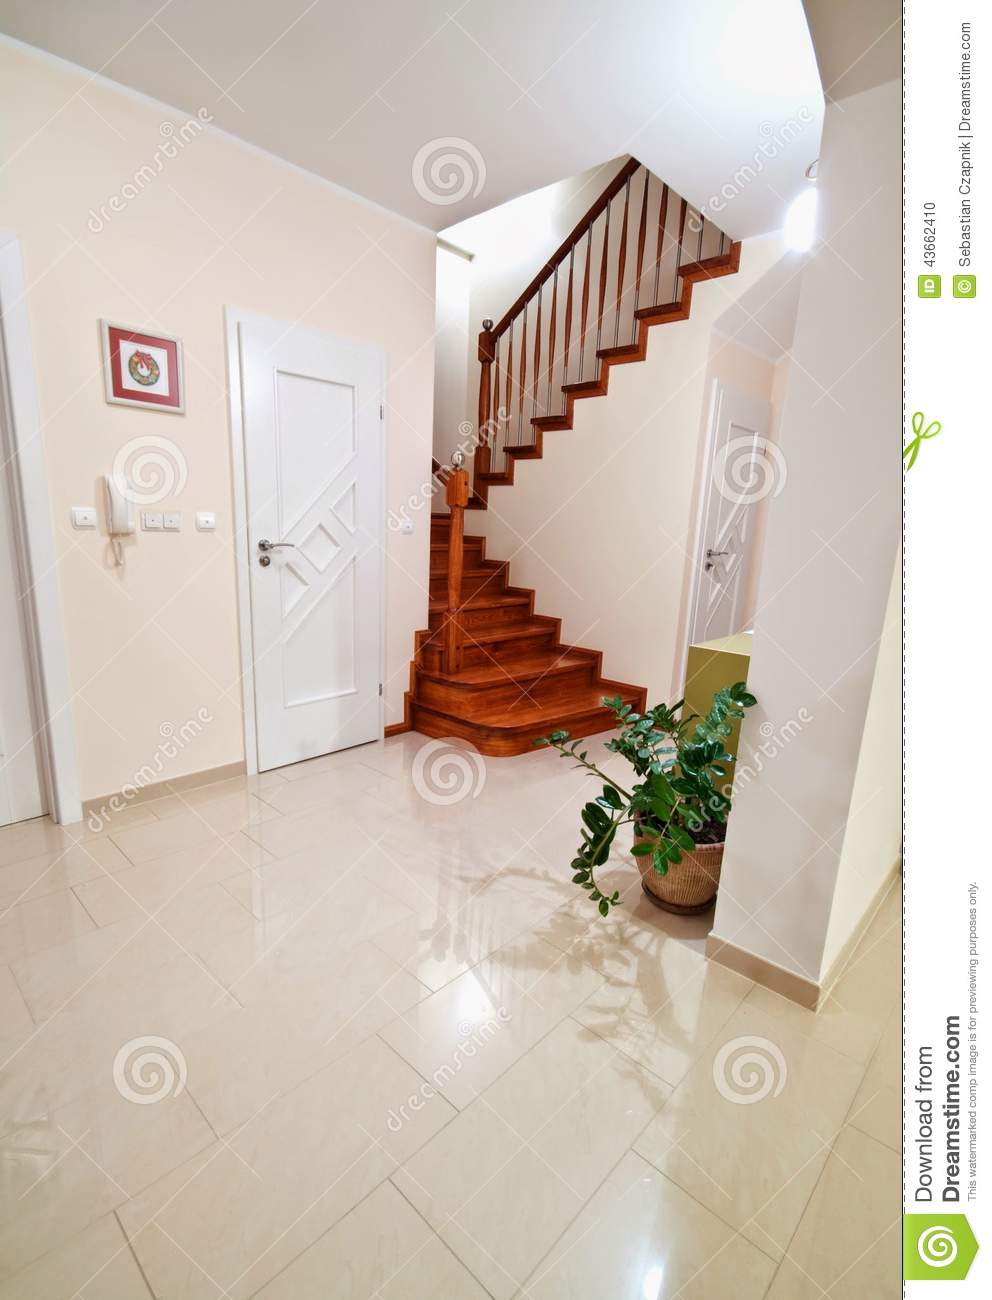 Hallway with wooden stairs to upper floors stock photo for Hallway photos